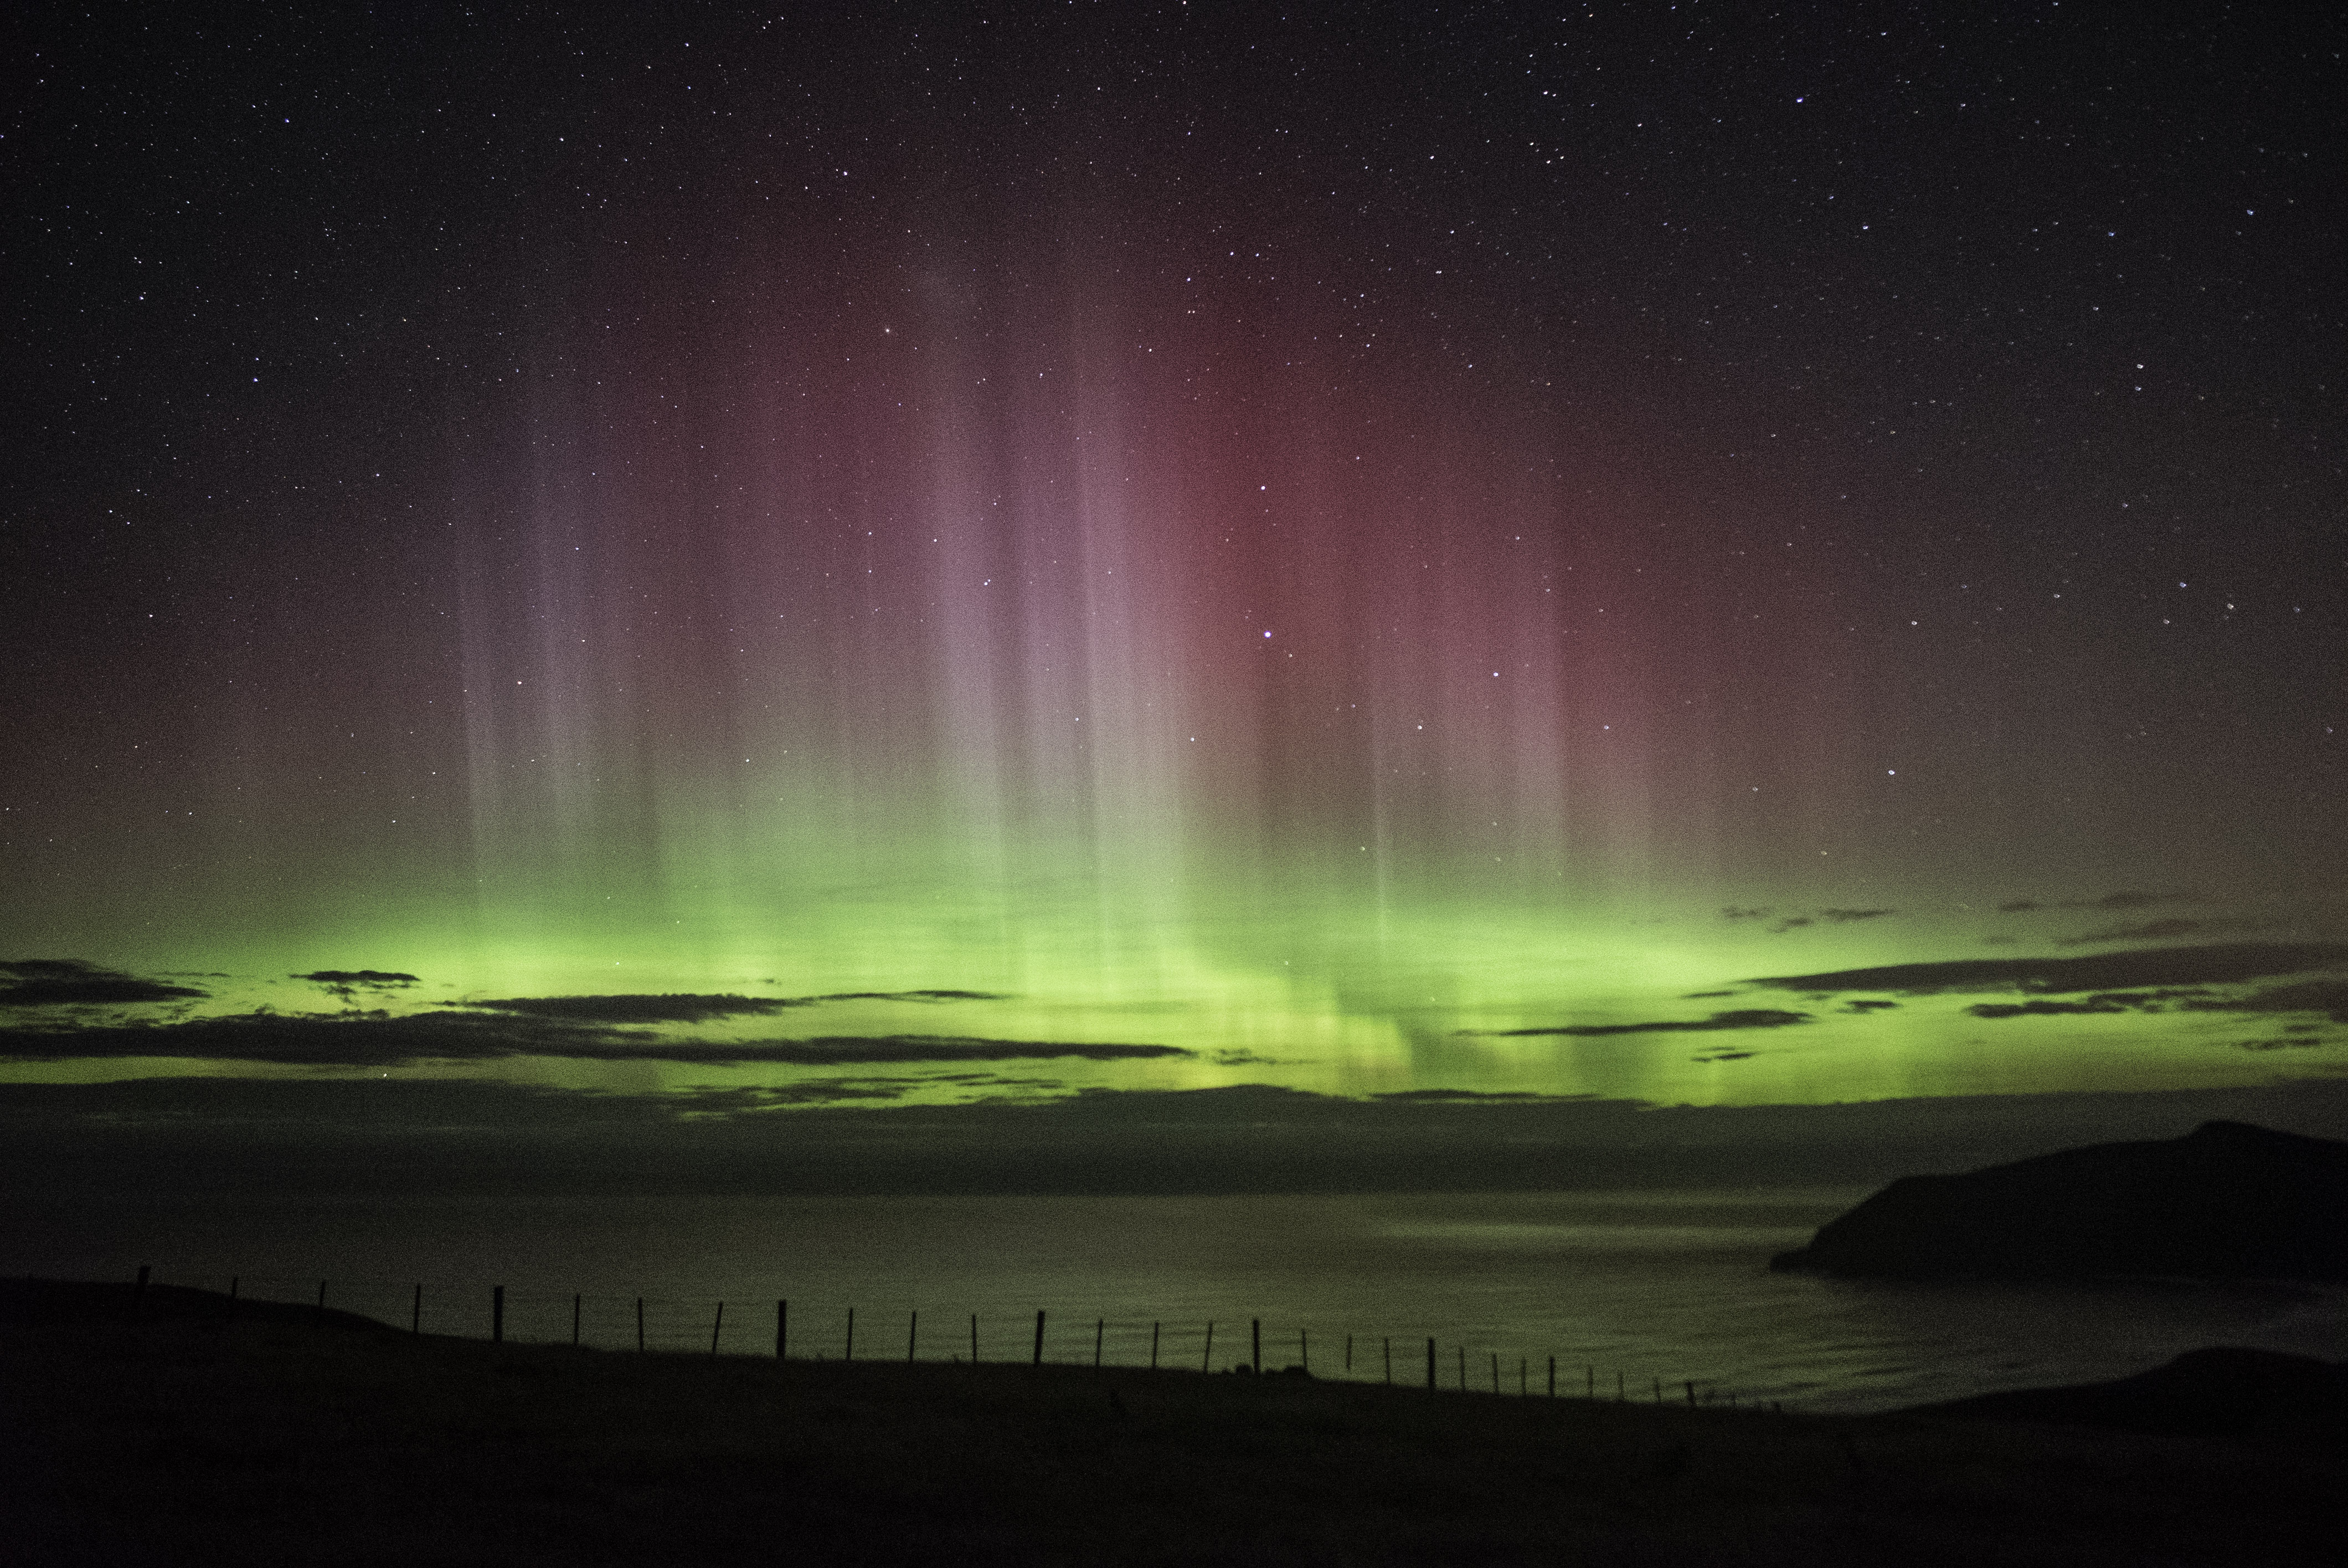 Southern Lights Where To See The Aurora Australis In New